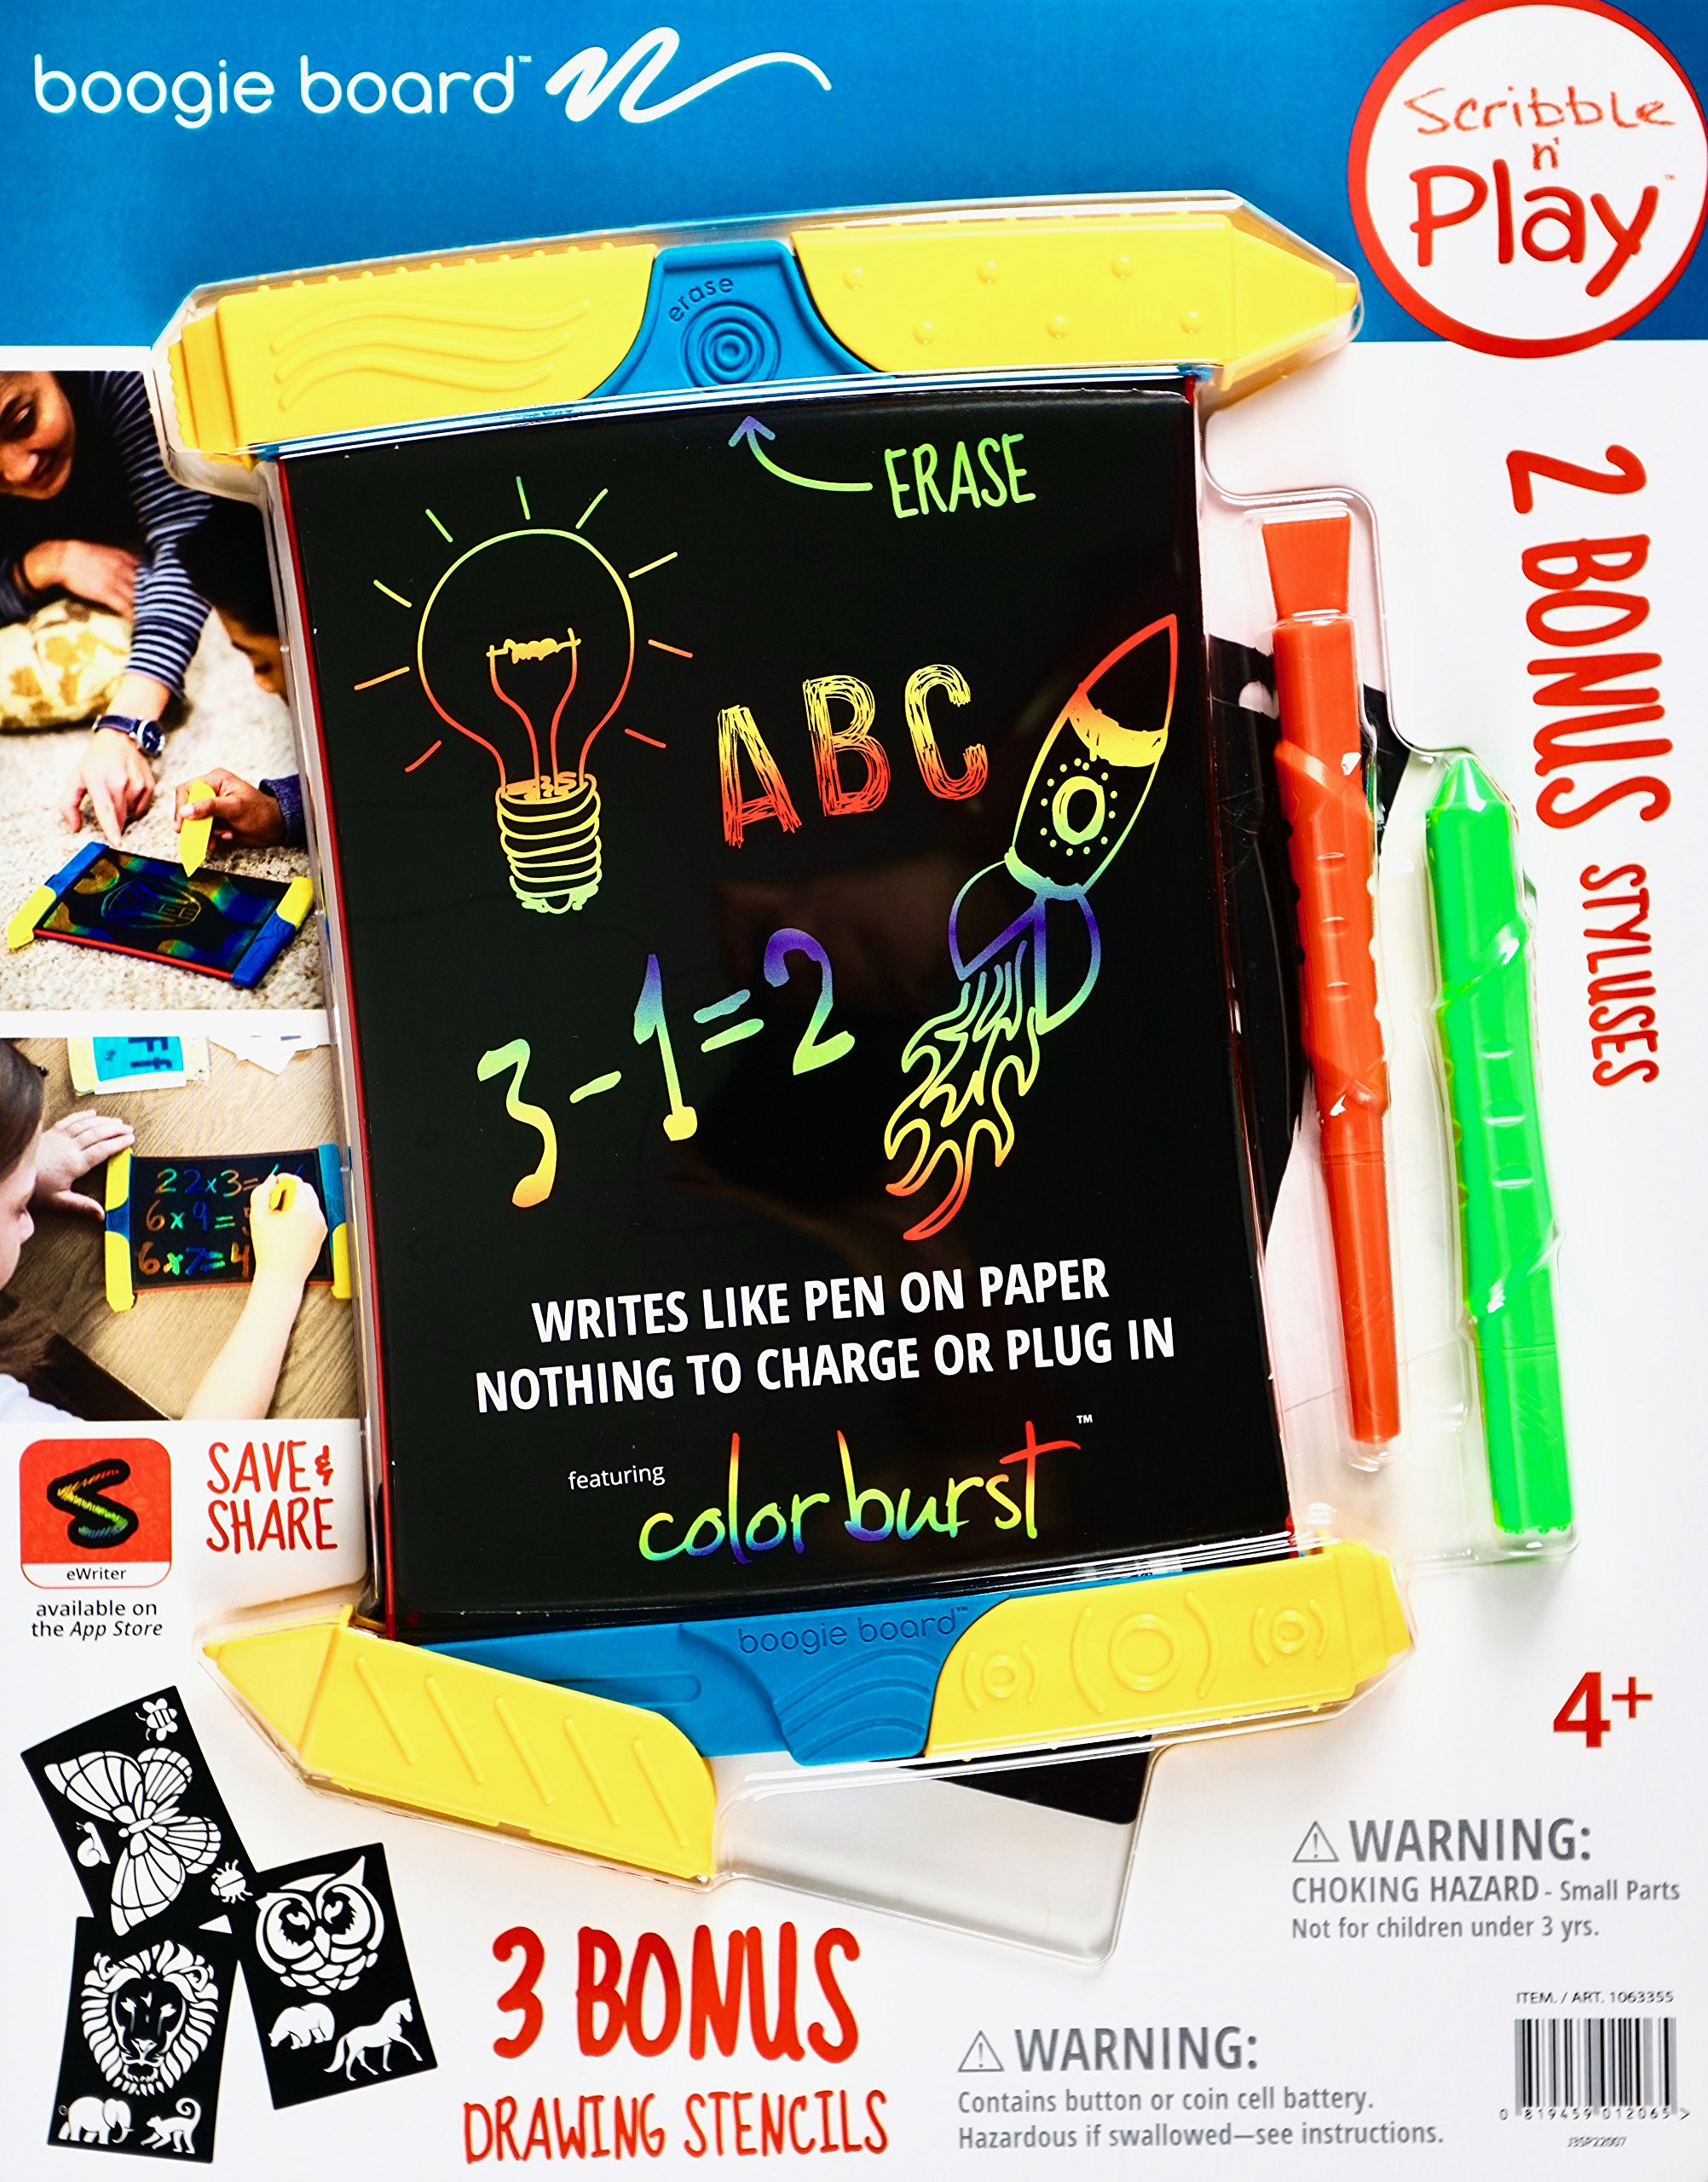 Boogie Board Scribble N' Play ColorBurst with 4 Writing Tools and 3 Drawing Stencils